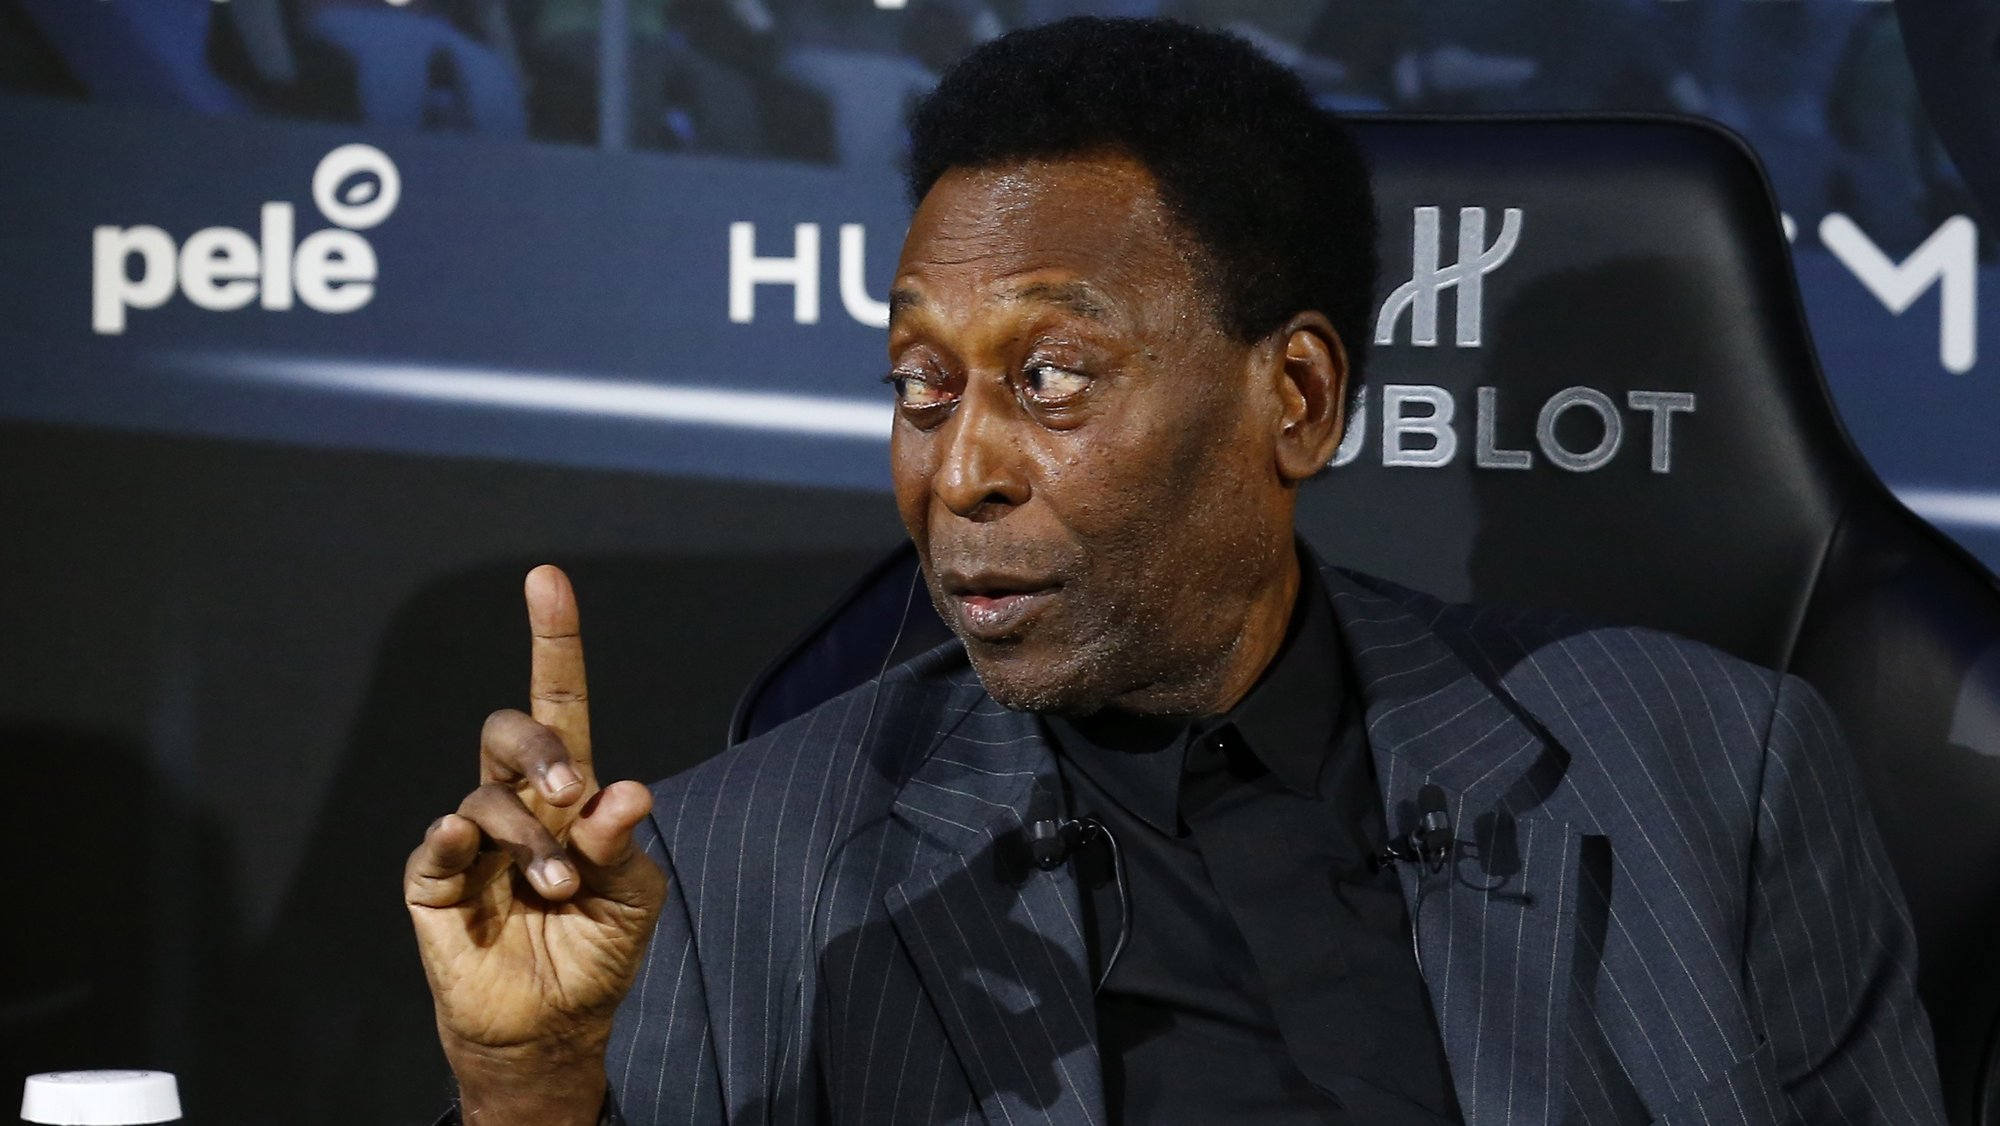 epa08767362 (FILE) - Legendary Brazilian former soccer player Pele attends a press conference at a commercial event in Paris, France, 02 April 2019 (re-issued on 23 October 2020). Edson Arantes do Nascimento 'Pele' was born in Tres Coracoes, Minas Gerais, Brazil on 23 October 1940 and celebrates today his 80th birthday.  EPA/IAN LANGSDON *** Local Caption *** 55099820